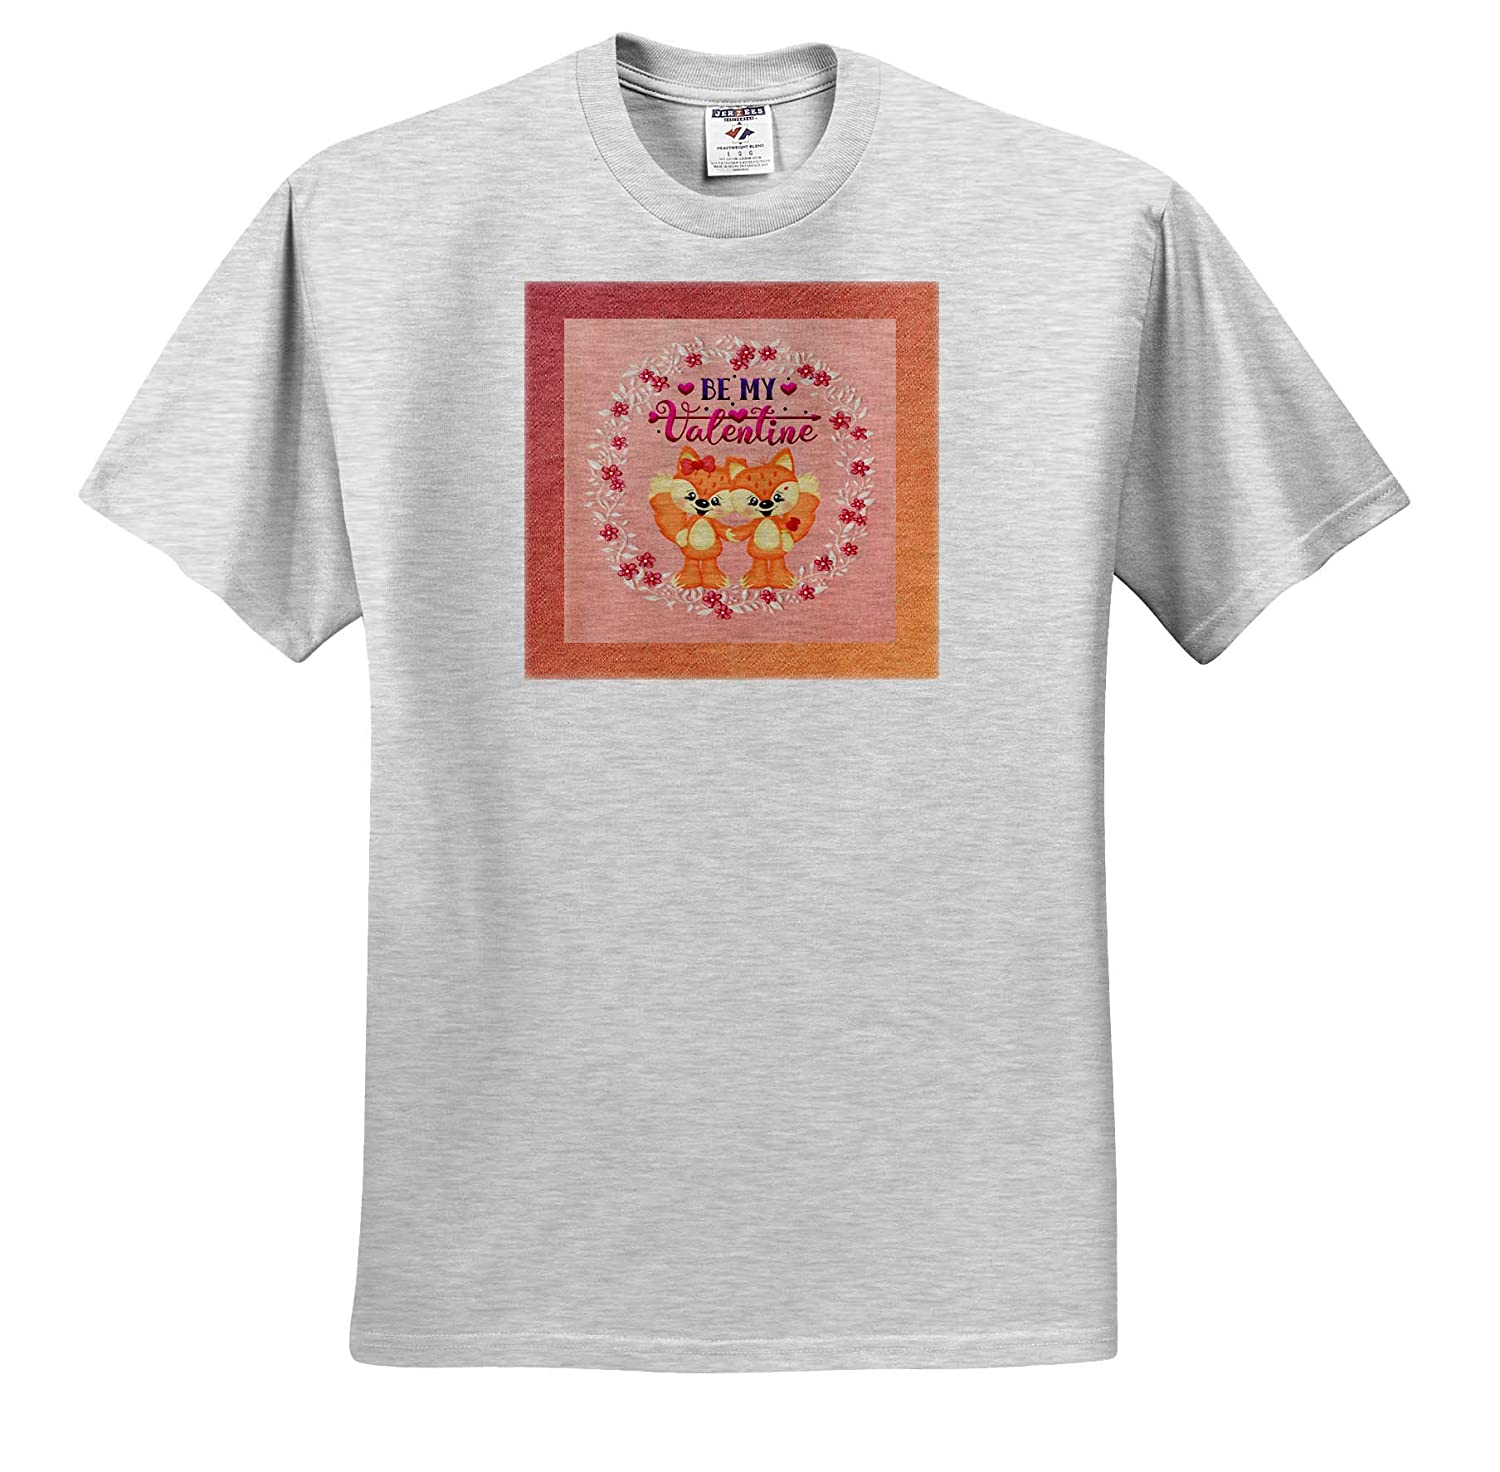 T-Shirts Flower Frame Be My Valentine 3dRose Beverly Turner Valentine Design Image of Fox Couple